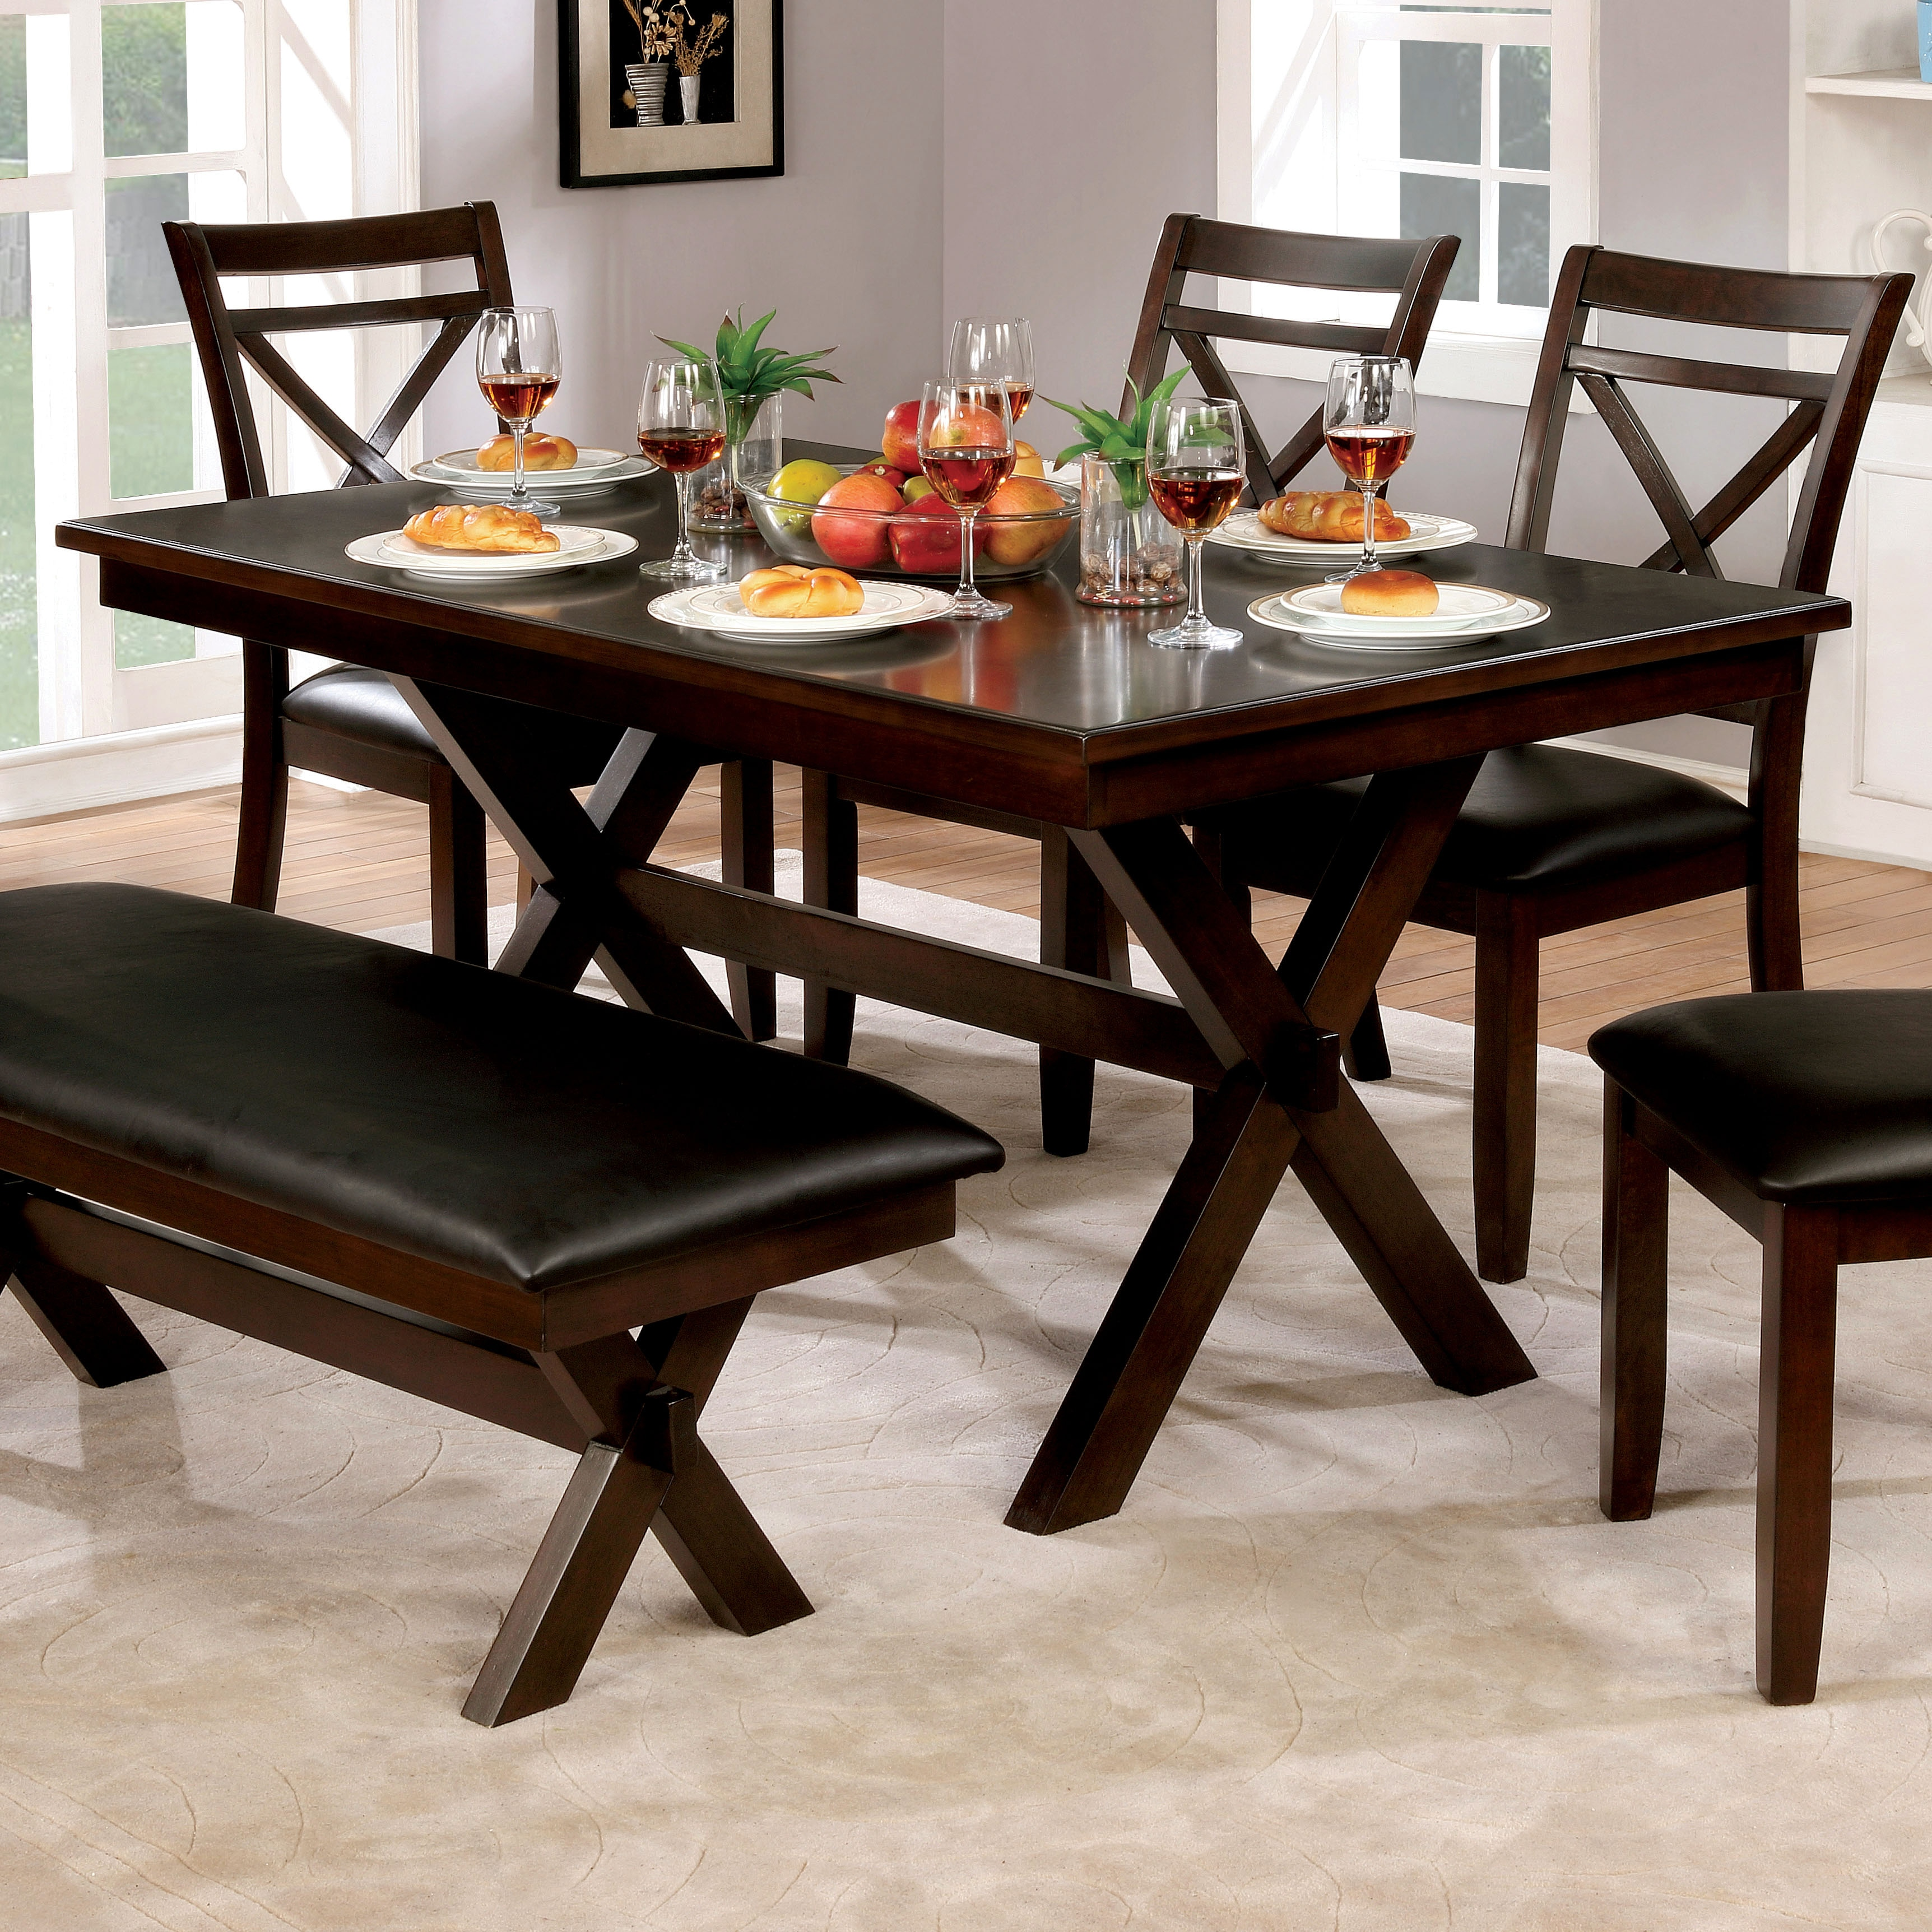 Superior Furniture Of America Clevelan Dark Cherry Wood 60 Inch Transitional Dining  Table